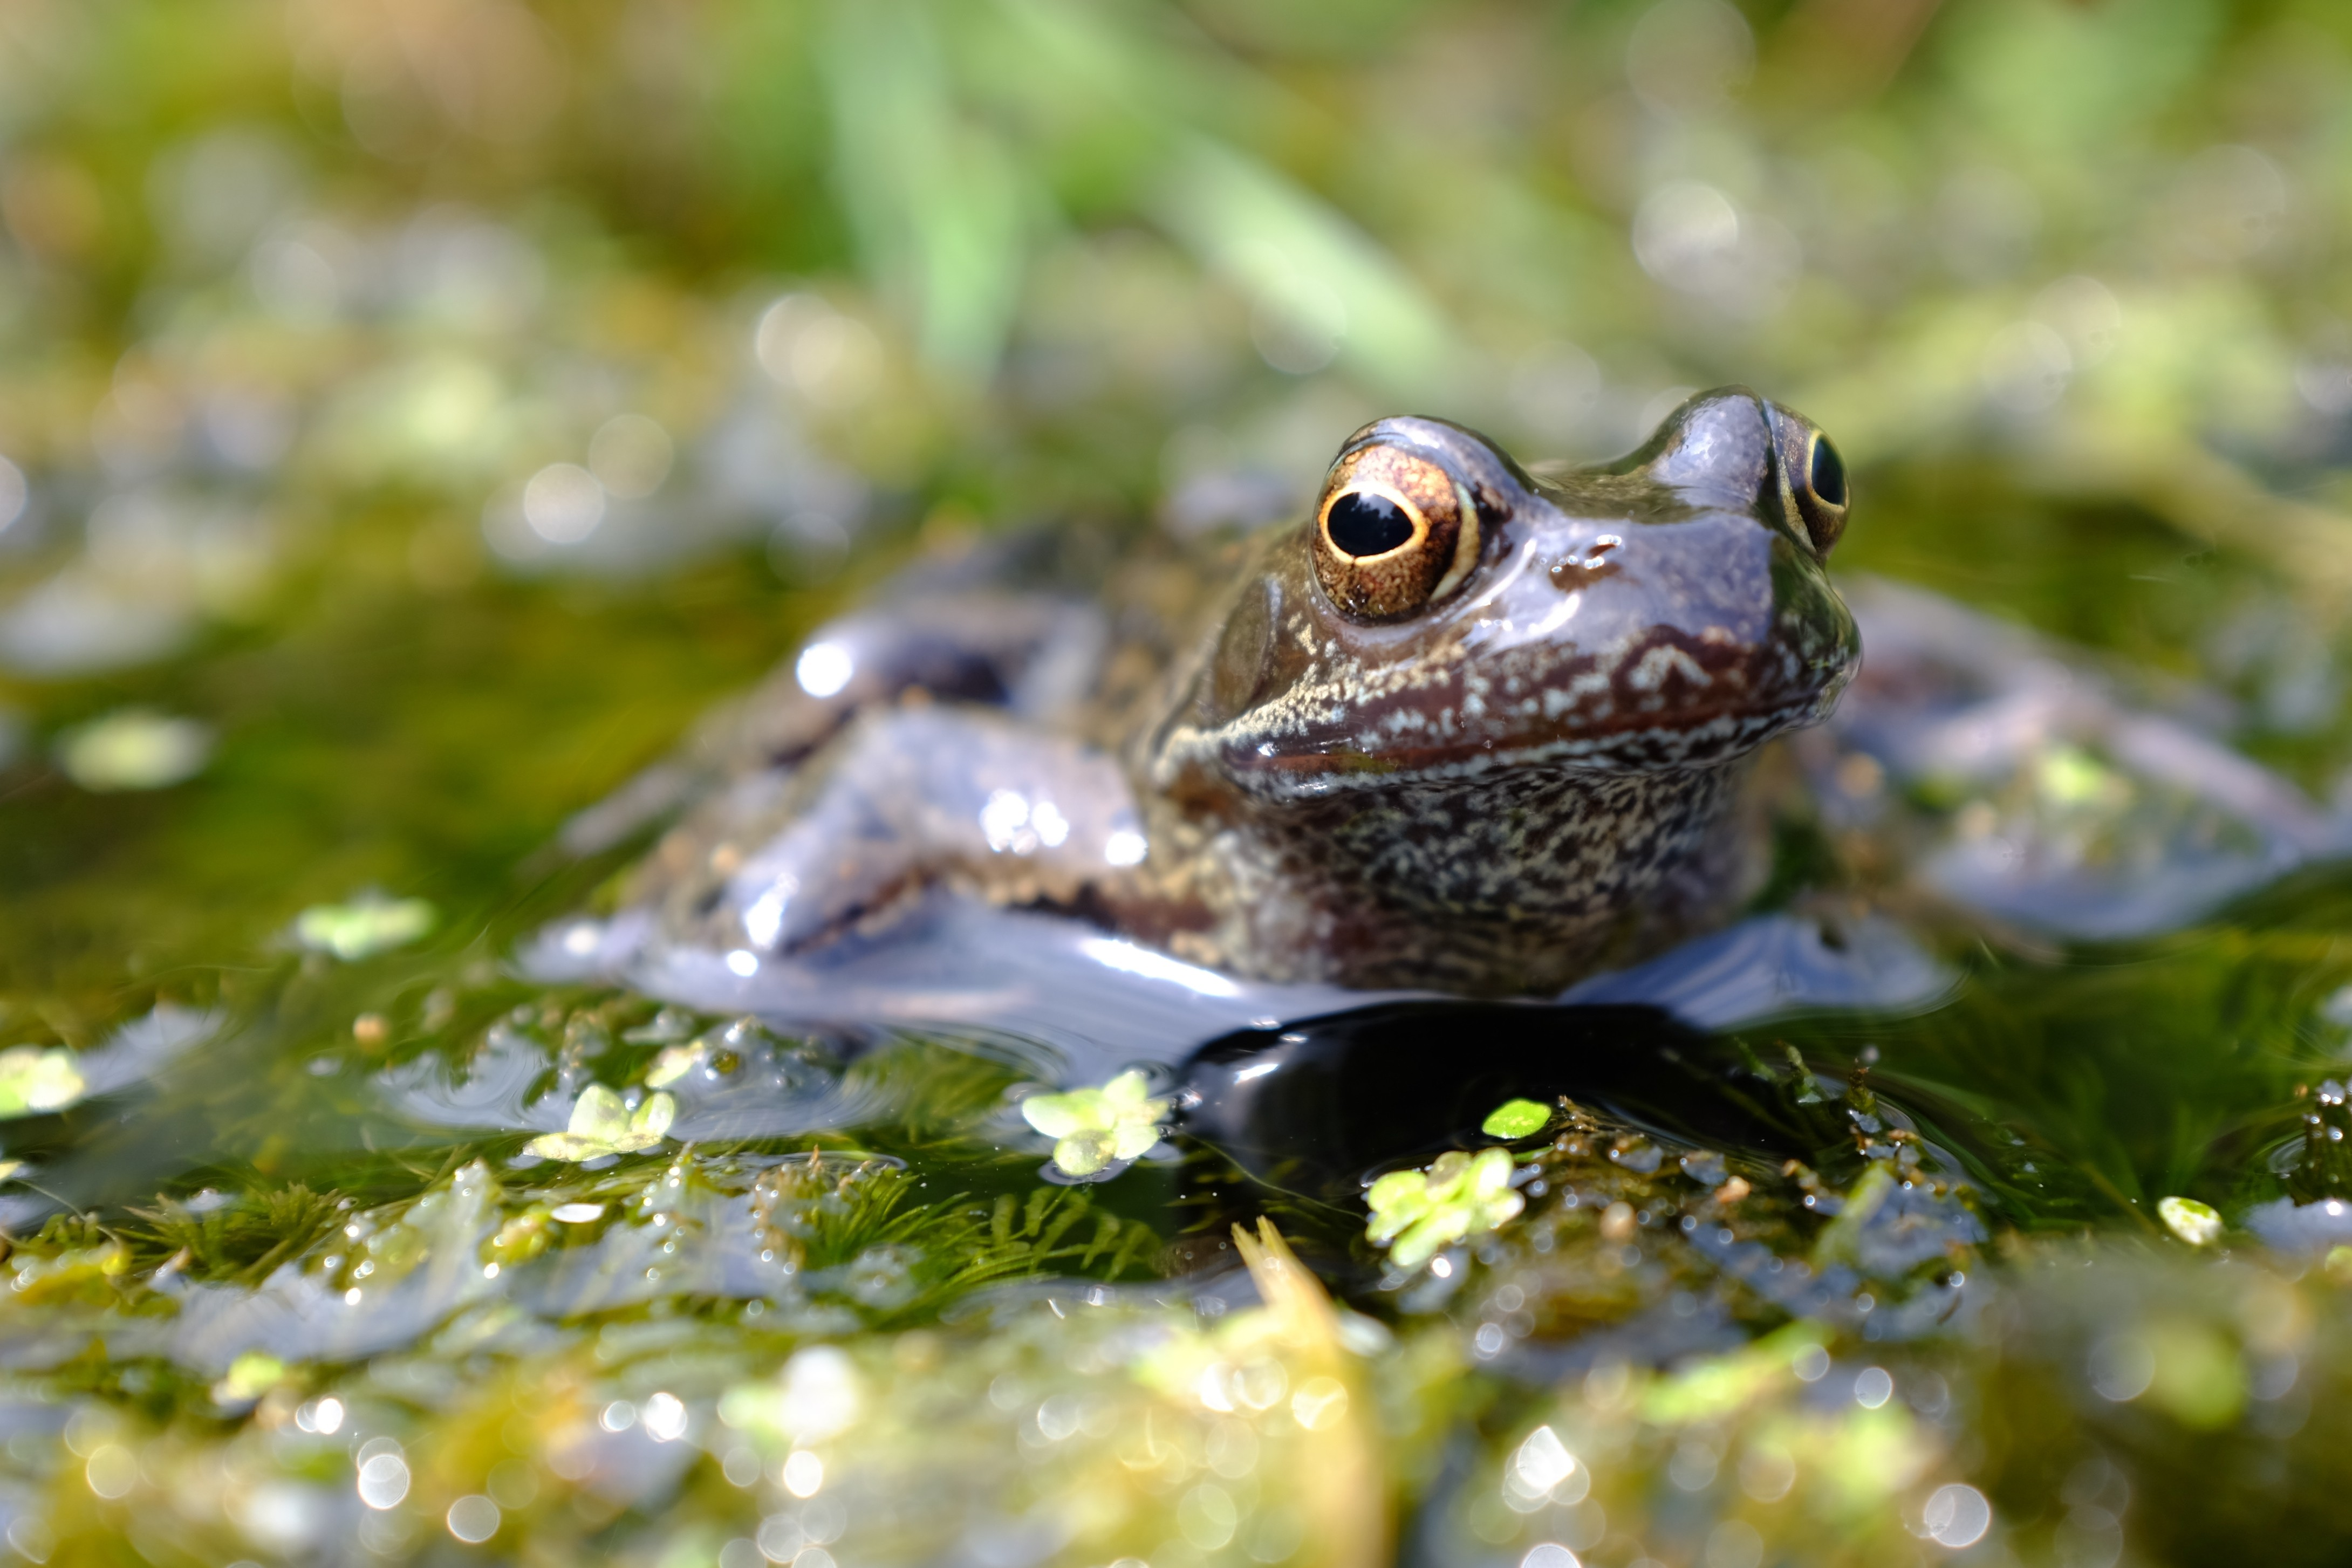 Common frog sitting on pond weed in the sunshine © Alasdair James / Getty